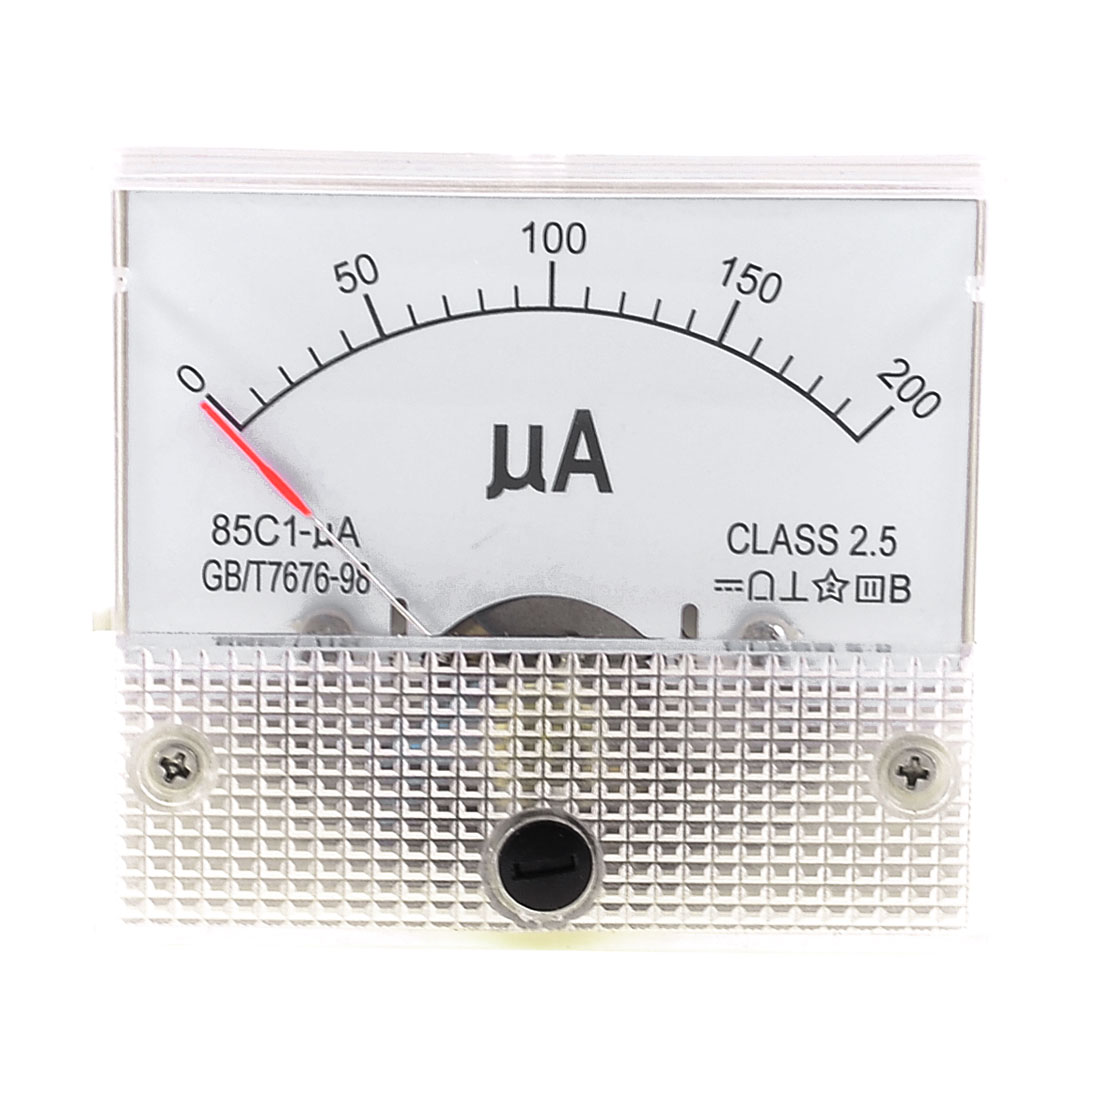 85C1-uA Panel DC 0-200uA Current Measuring Tool Analogue Meter